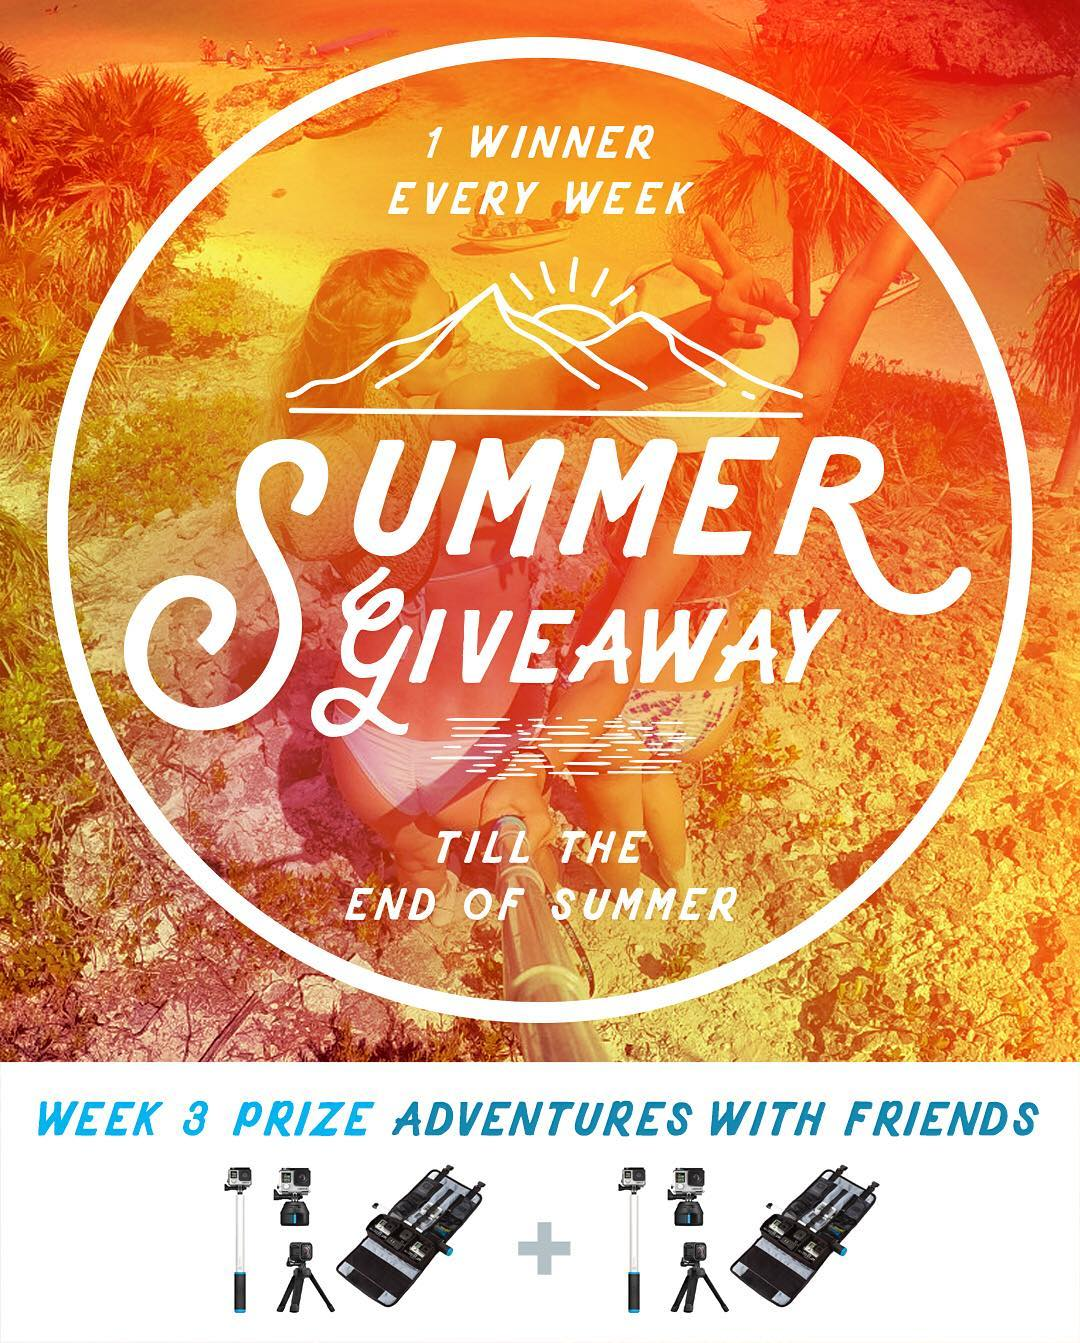 Congrats to week 2 winner, John Slatter from Australia! GoPole Summer Giveaway week 3 prize - Adventure with Friends. Week 3 winner will receive 2 prize packs, one for a friend! Enter daily to increase your chances. No purchase necessary, enter once or...